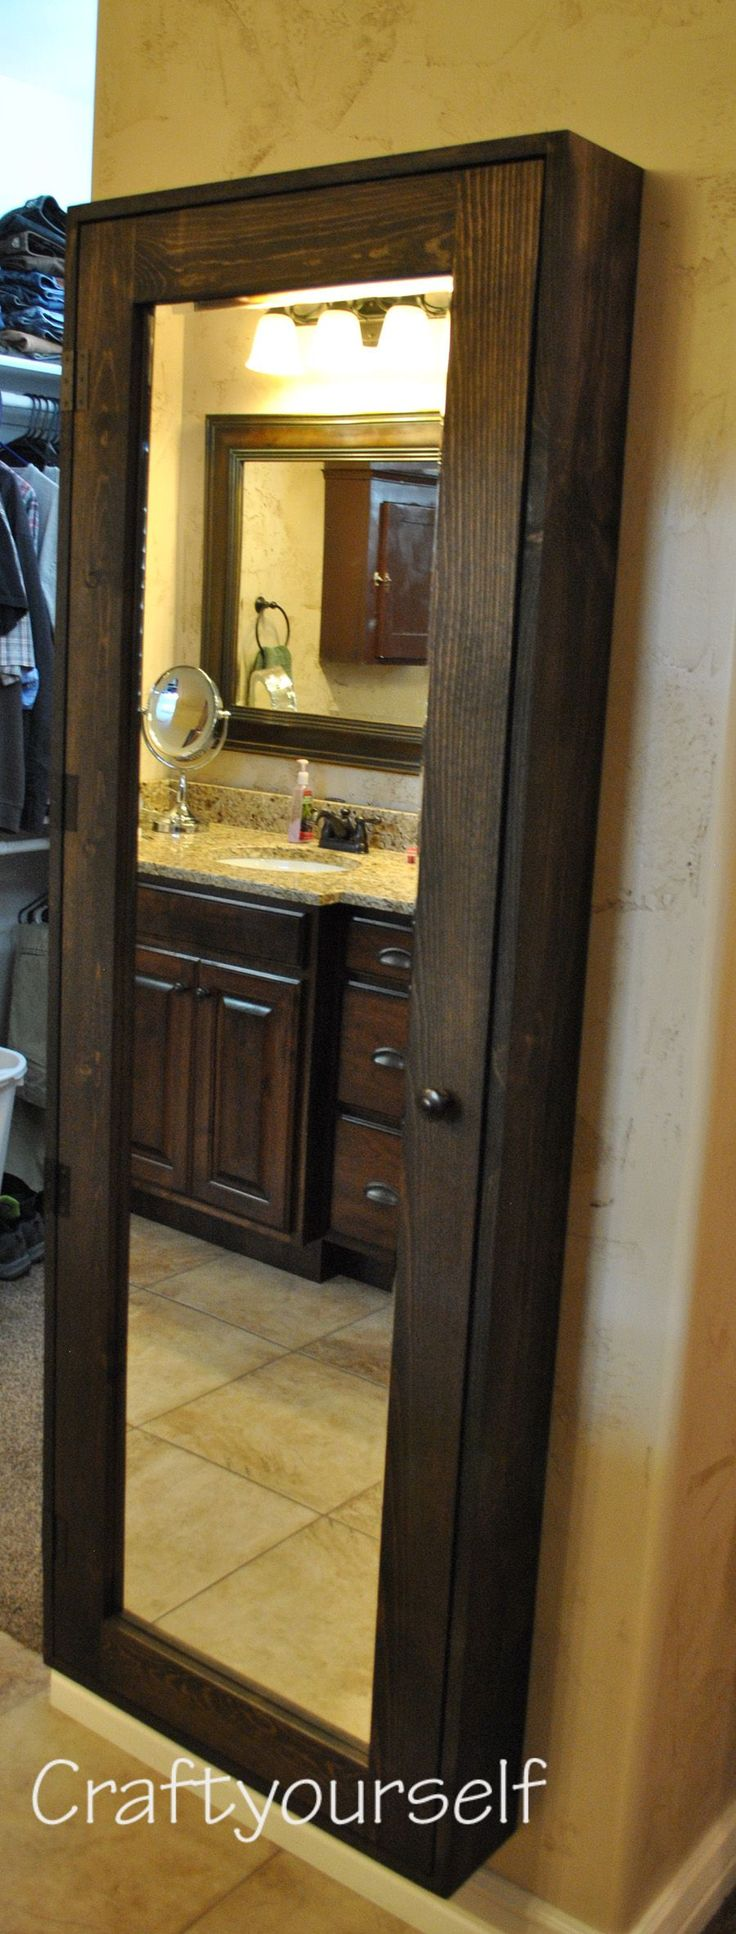 Best bathroom mirror cabinets - Diy Bathroom Cabinet With Mirror